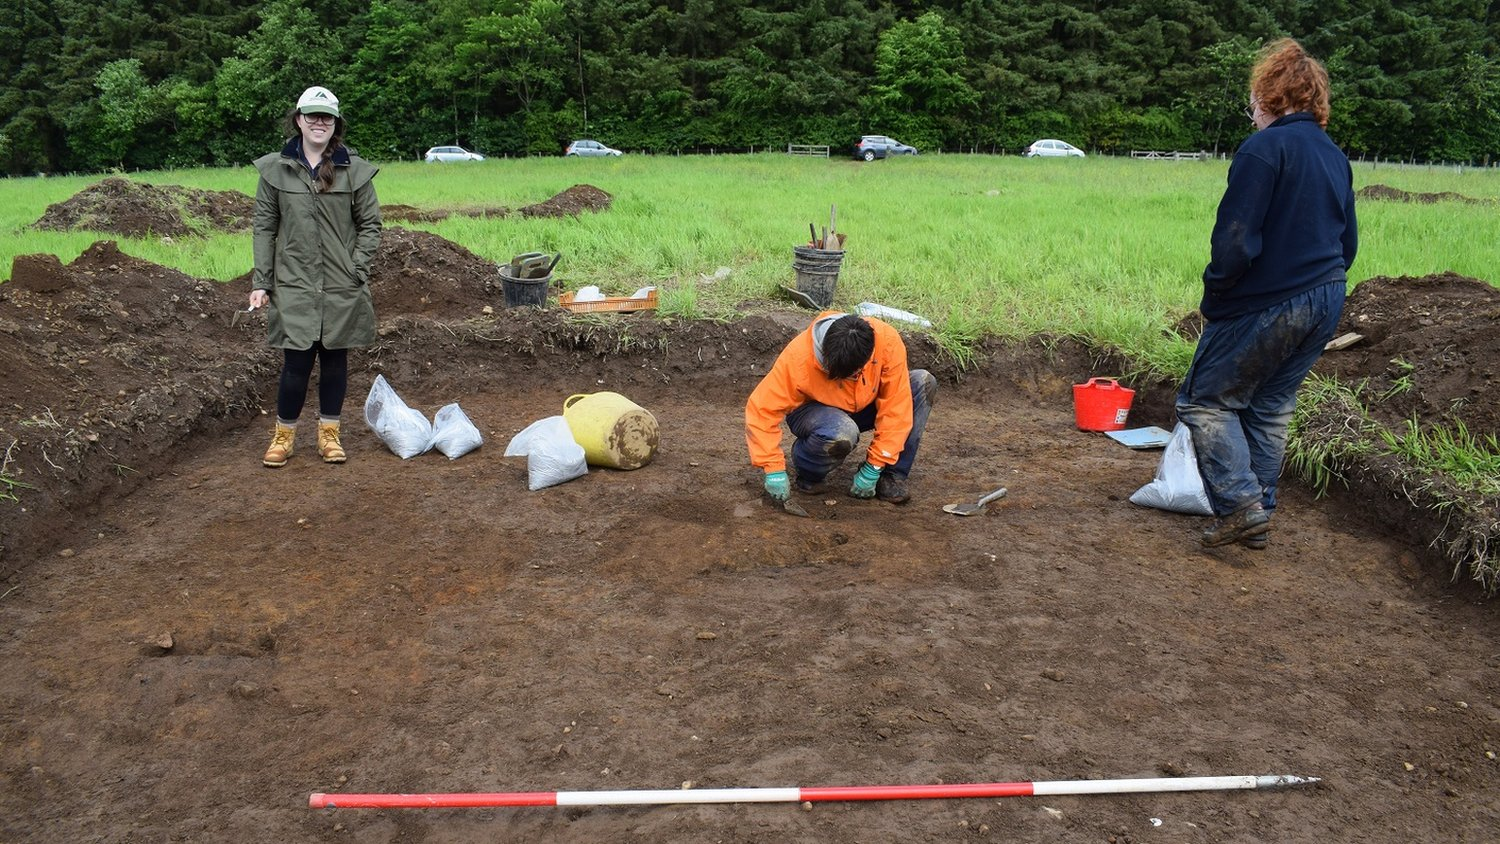 New archaeological dig at Aden Country Park